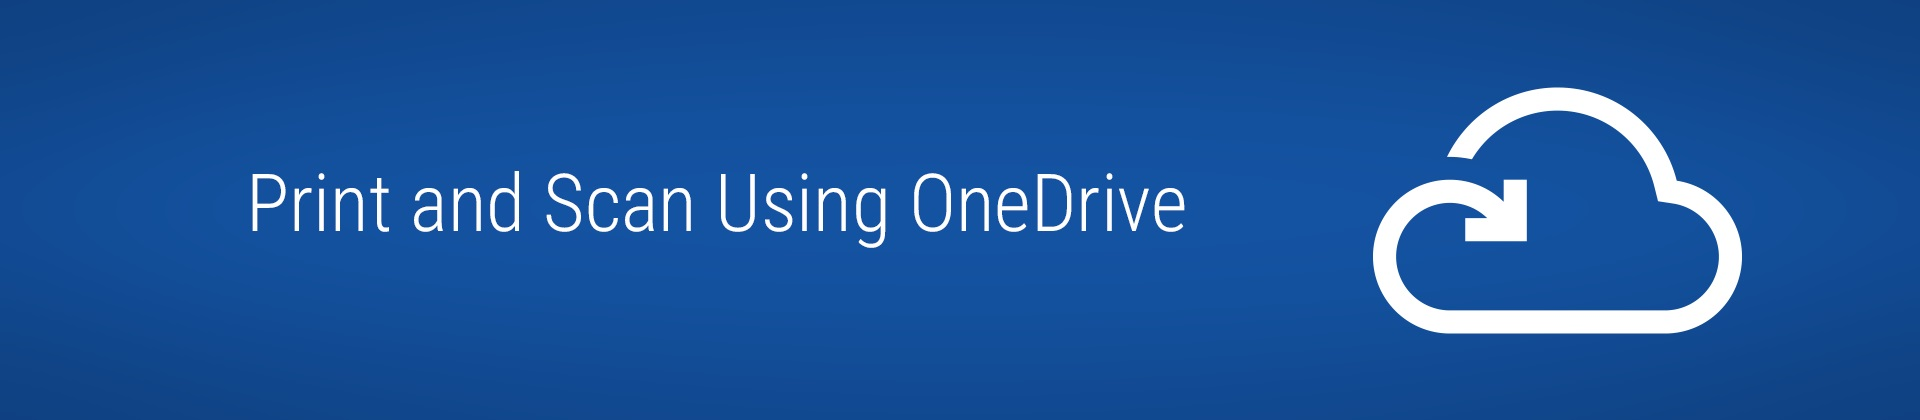 print and scan using onedrive